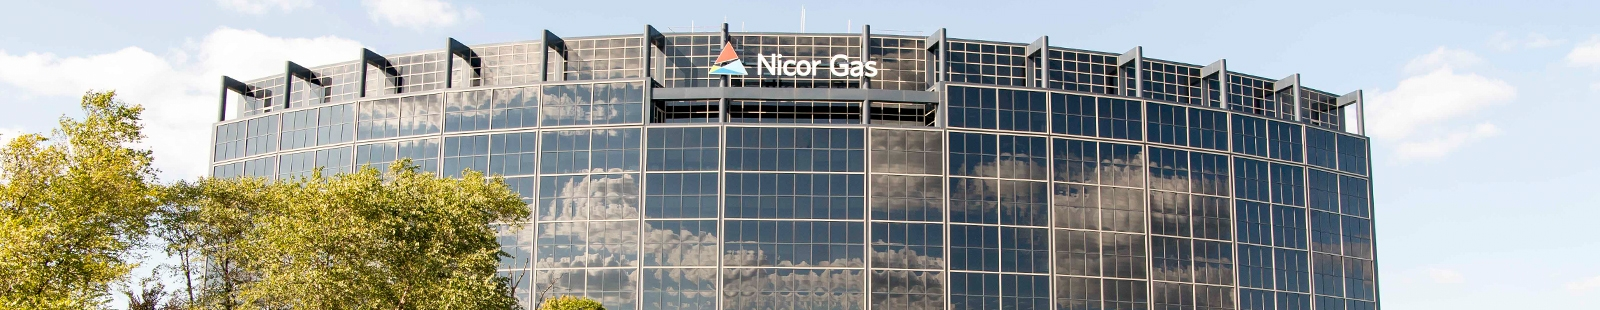 Nicor Gas building